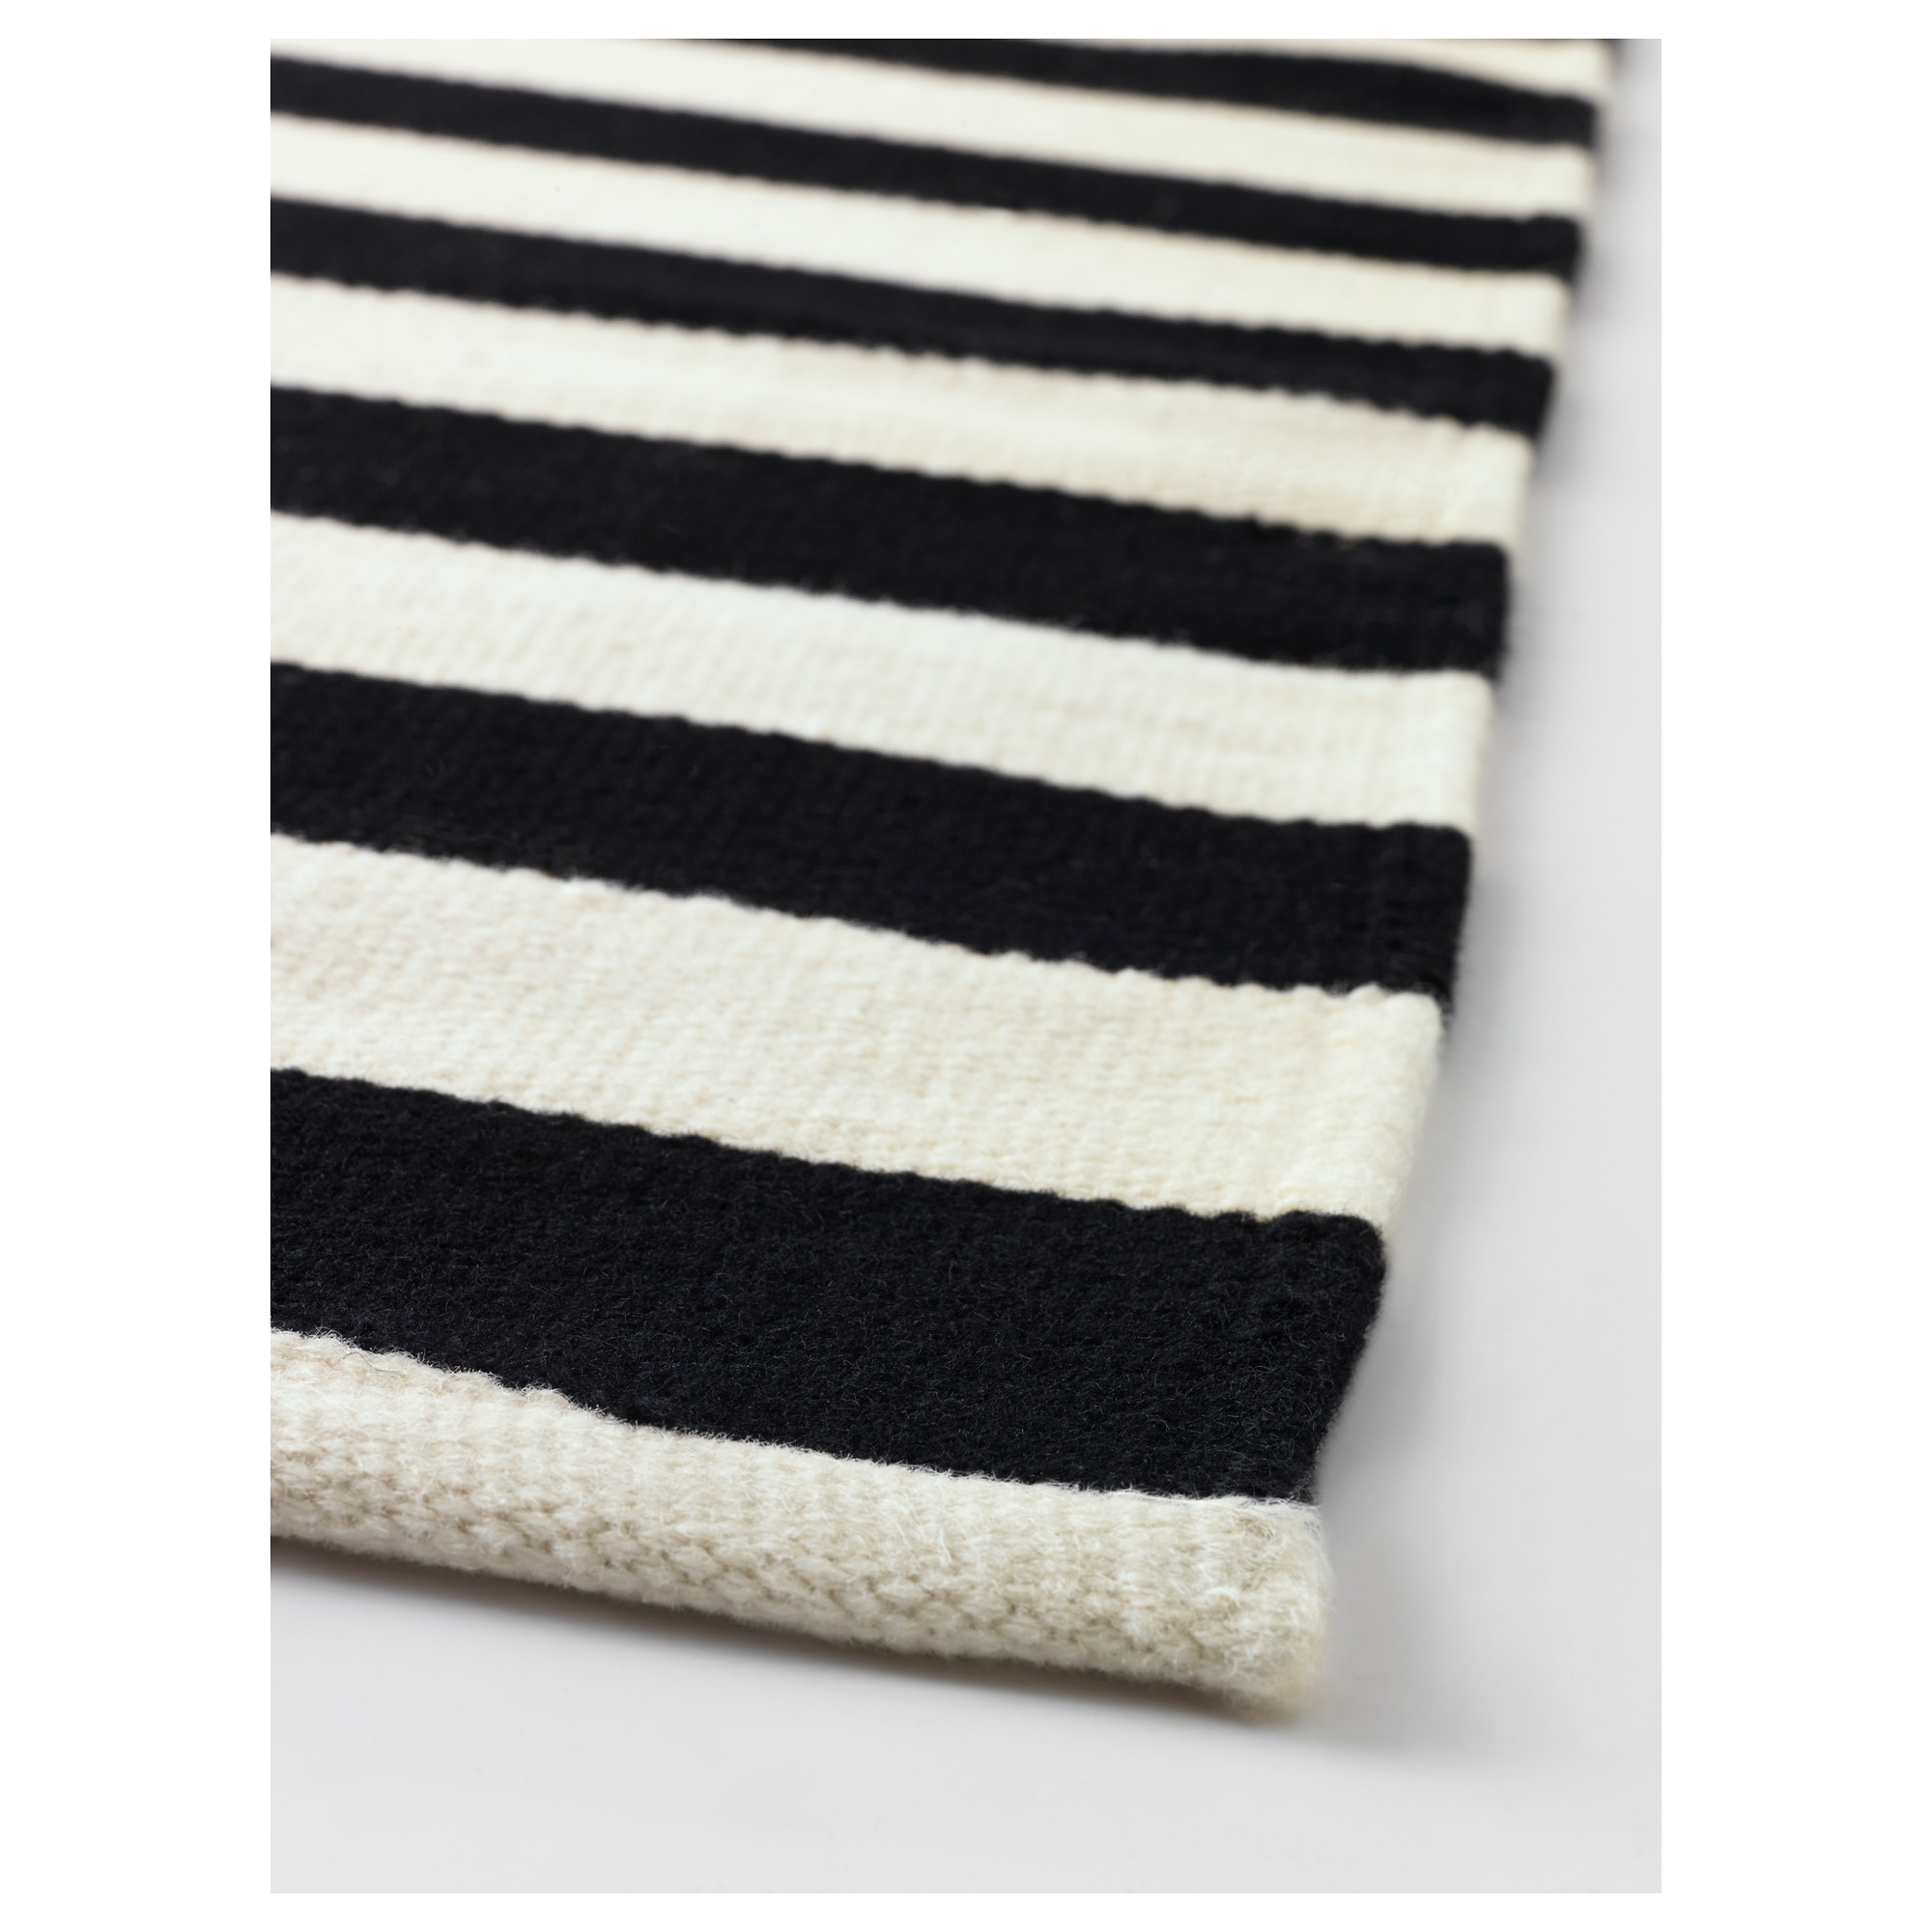 black and white striped wool carpet carpet vidalondon. Black Bedroom Furniture Sets. Home Design Ideas